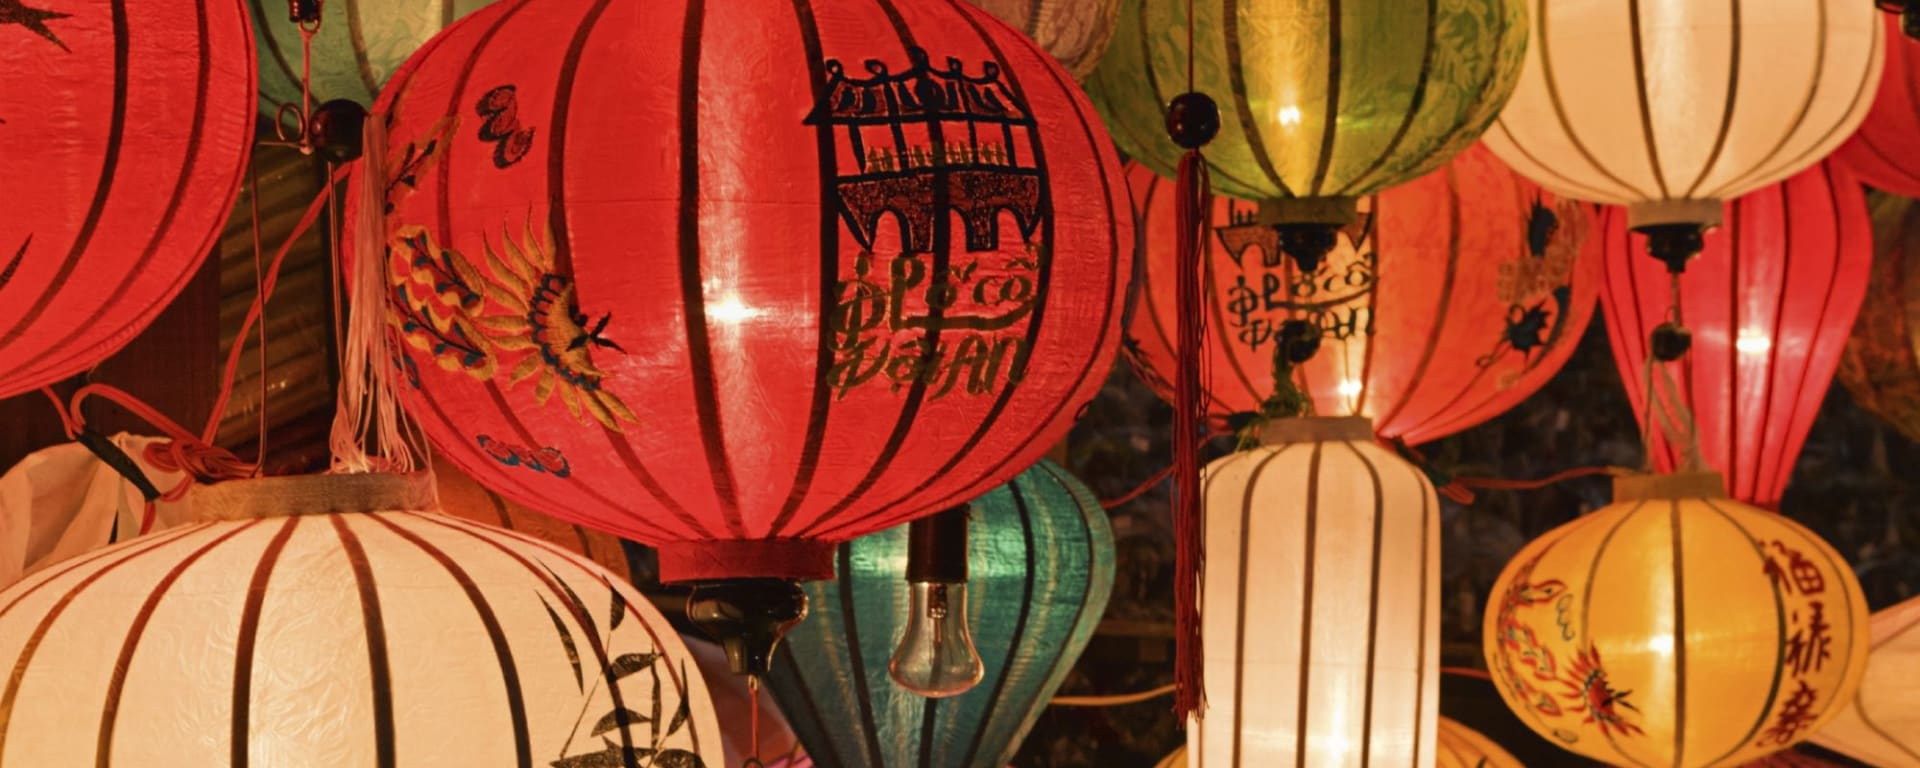 Höhepunkte Vietnams ab Hanoi: Asian (Chinese / Vietnamese) traditional silk hanging lanterns in Hoi An